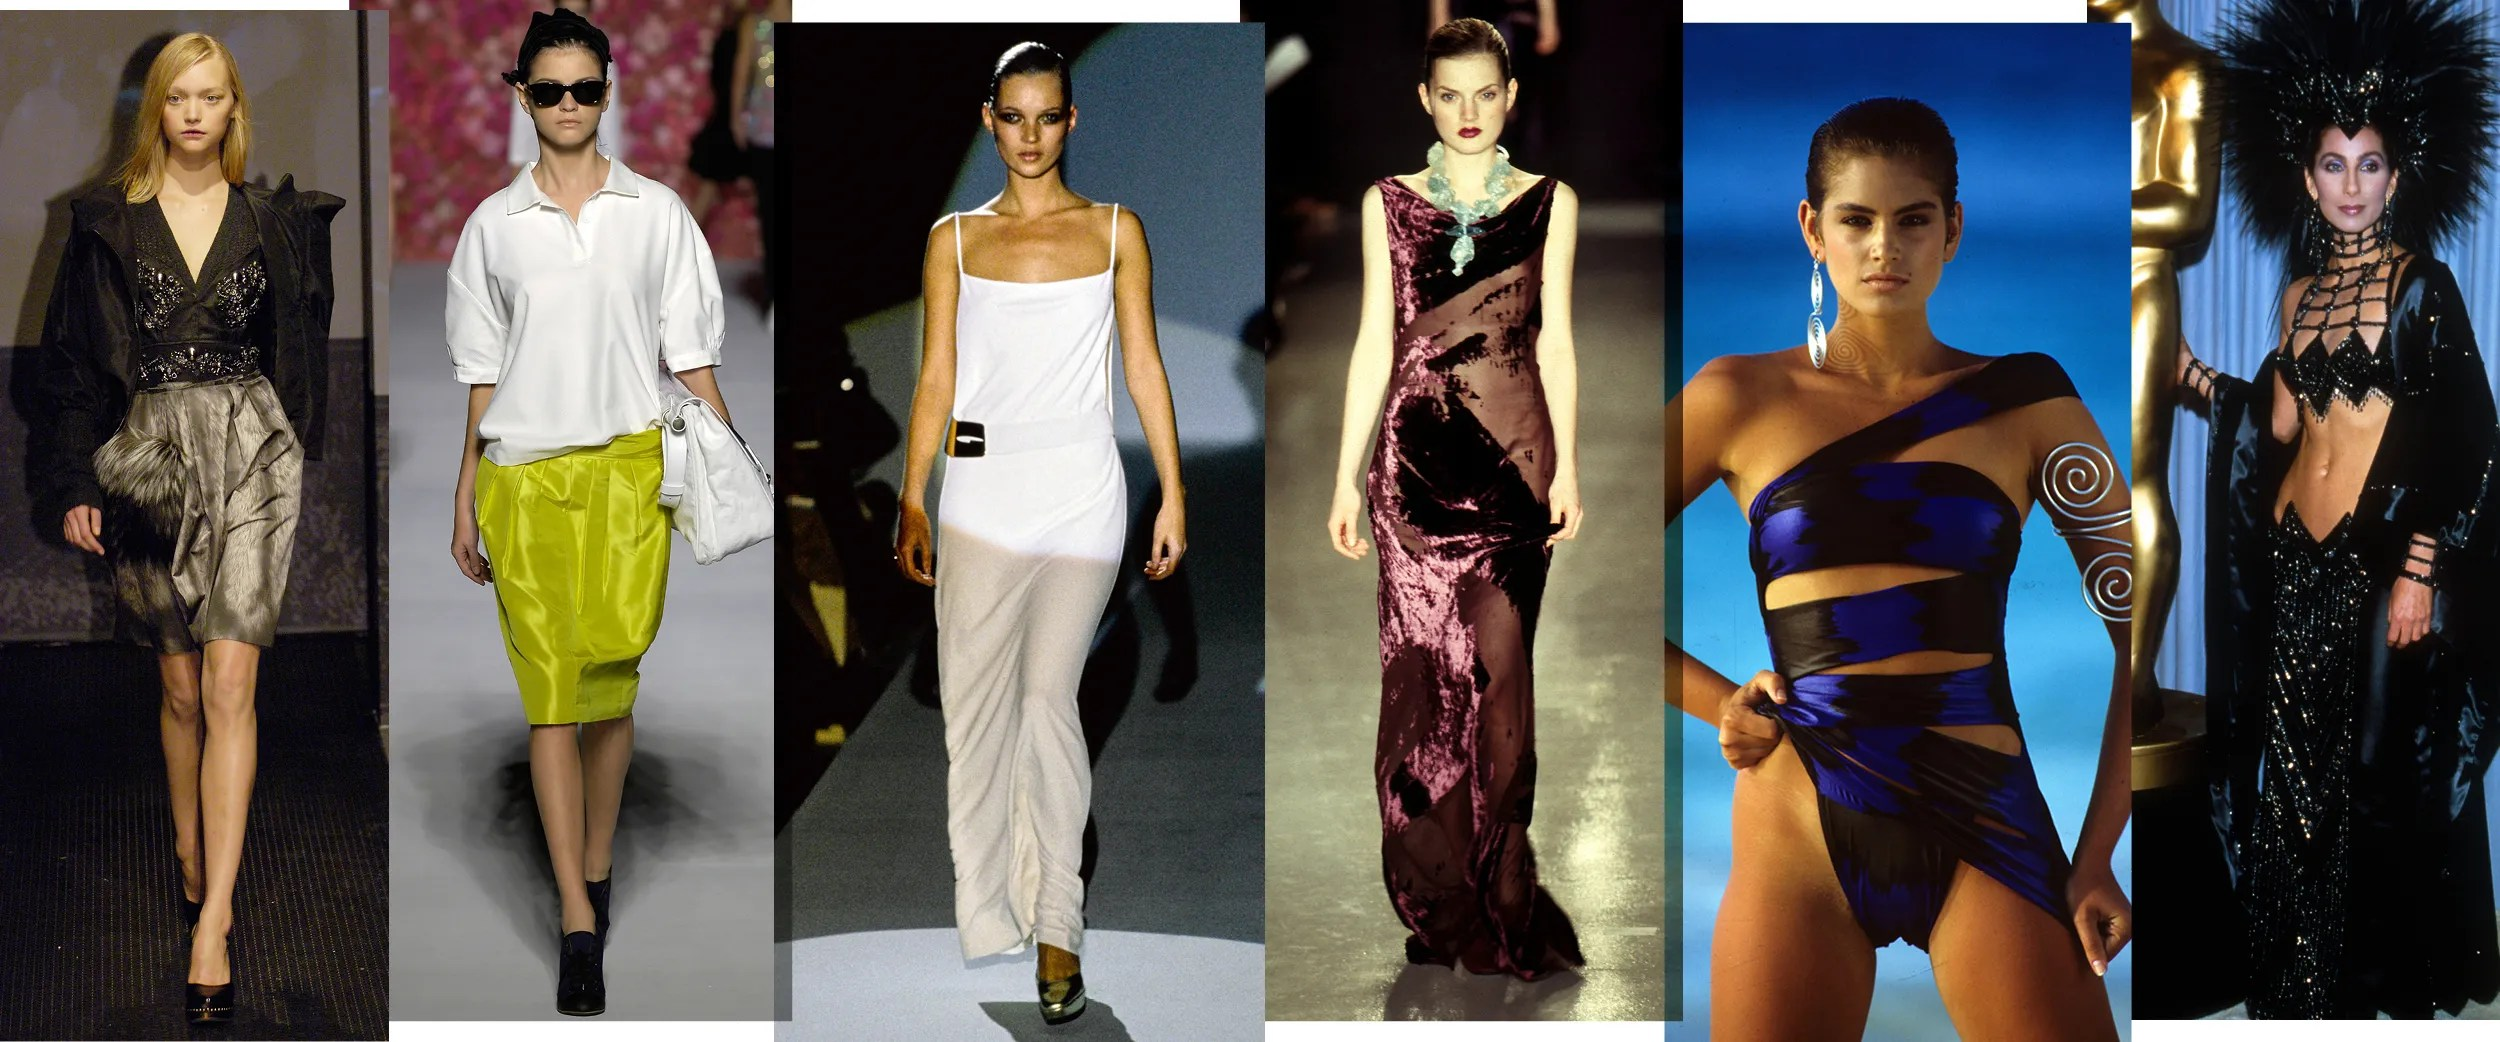 Fashion In 2006, 1996, And 1986—a New Year's Eve Throwback